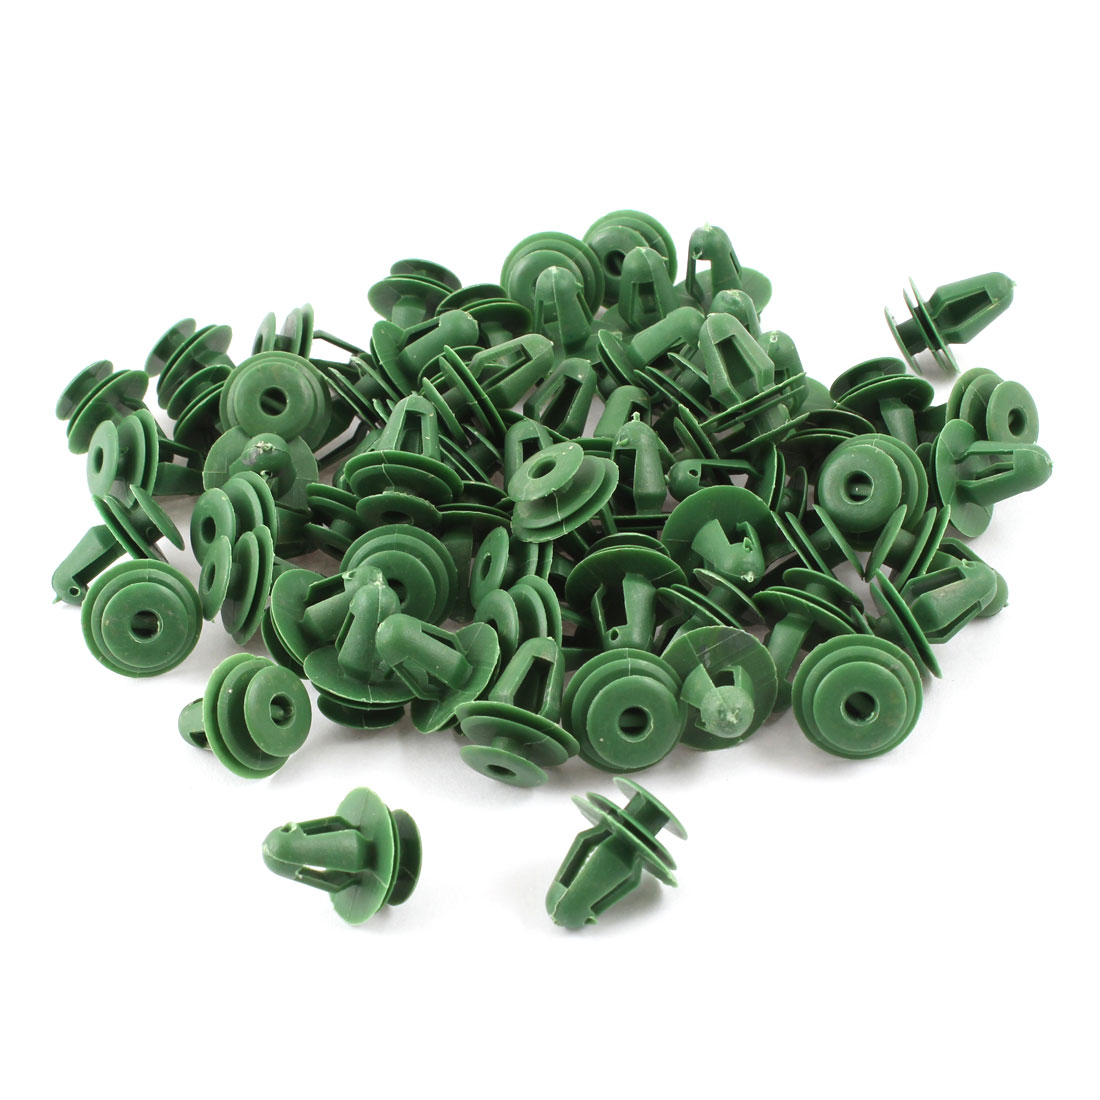 102 Pcs Green Plastic Rivets Retainer Clip 18x15x10mm for Car Bumper Fender